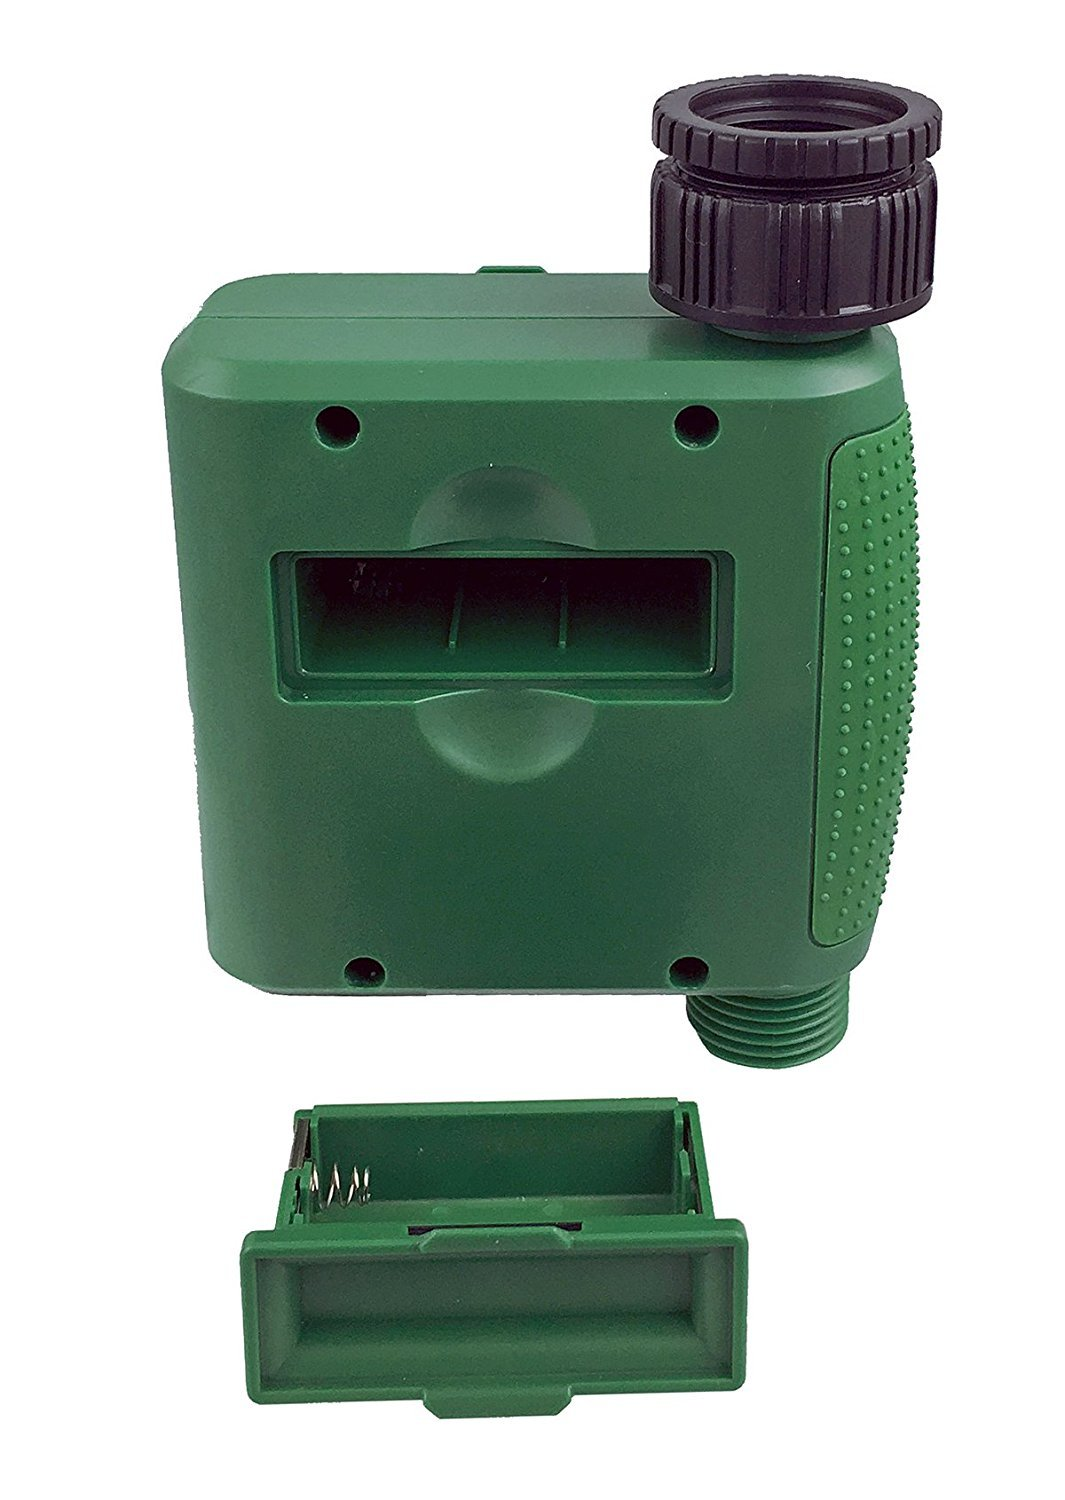 Instapark PWT-07 Outdoor Waterproof Digital Programmable Single Outlet Automatic On Off Water Faucet Hose Timer with Rain Delay and Manual Control by Instapark (Image #5)